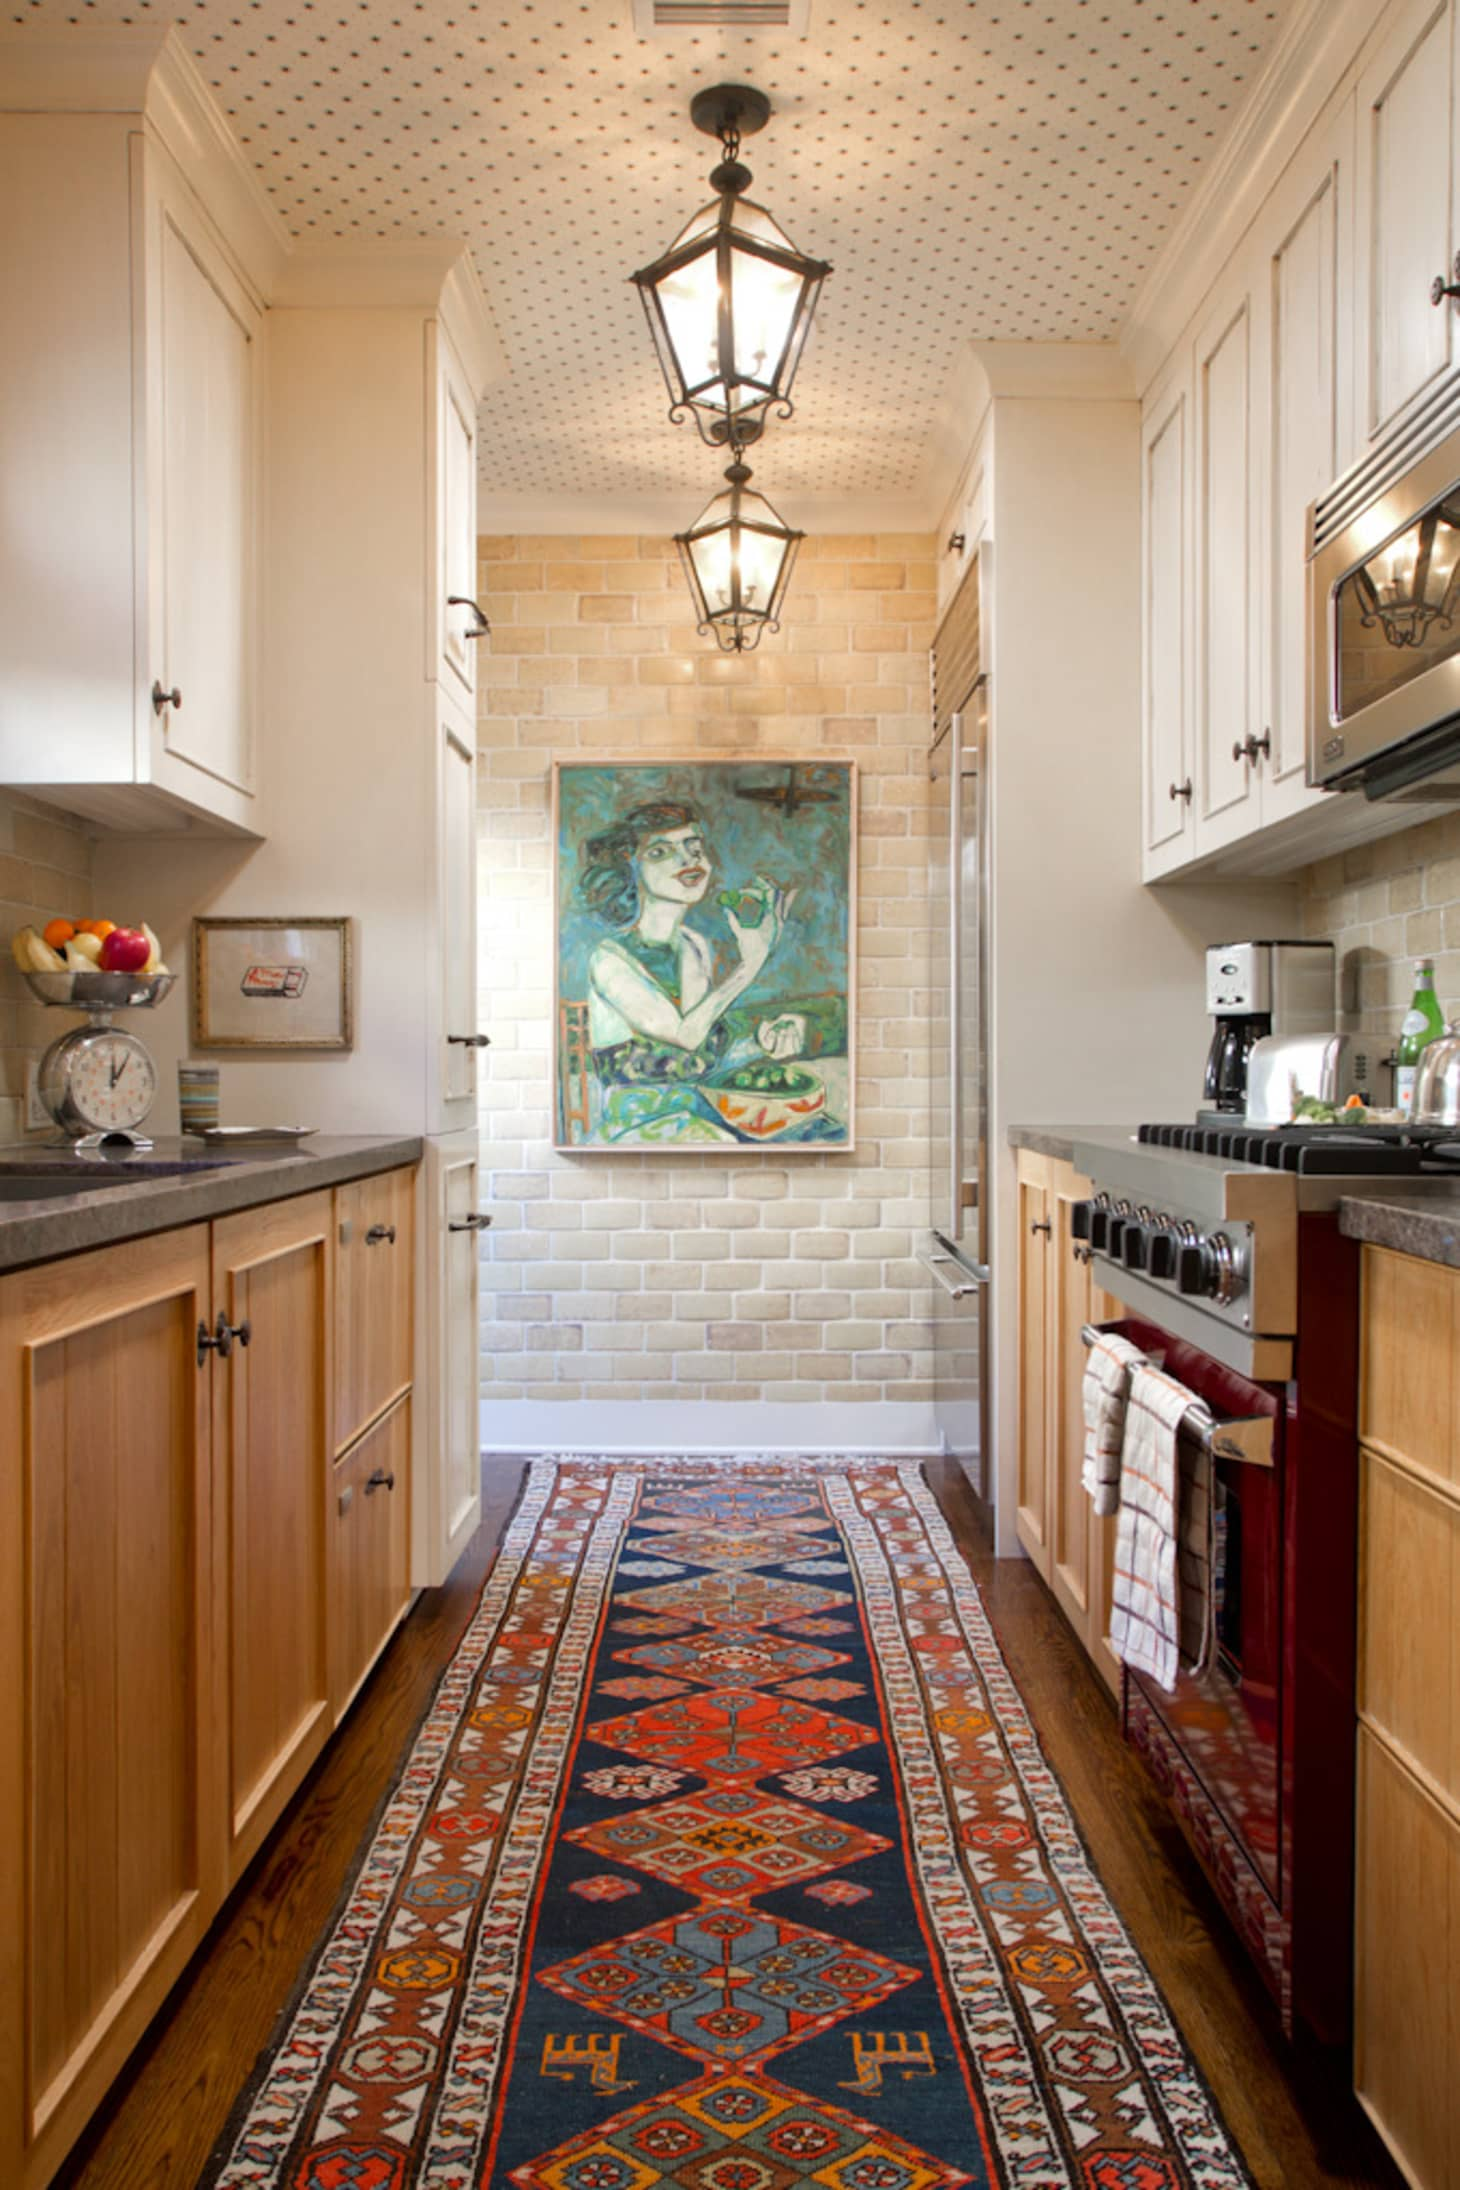 10 Kitchen And Home Decor Items Every 20 Something Needs: Galley Kitchen Ideas - Designs, Layouts, Style